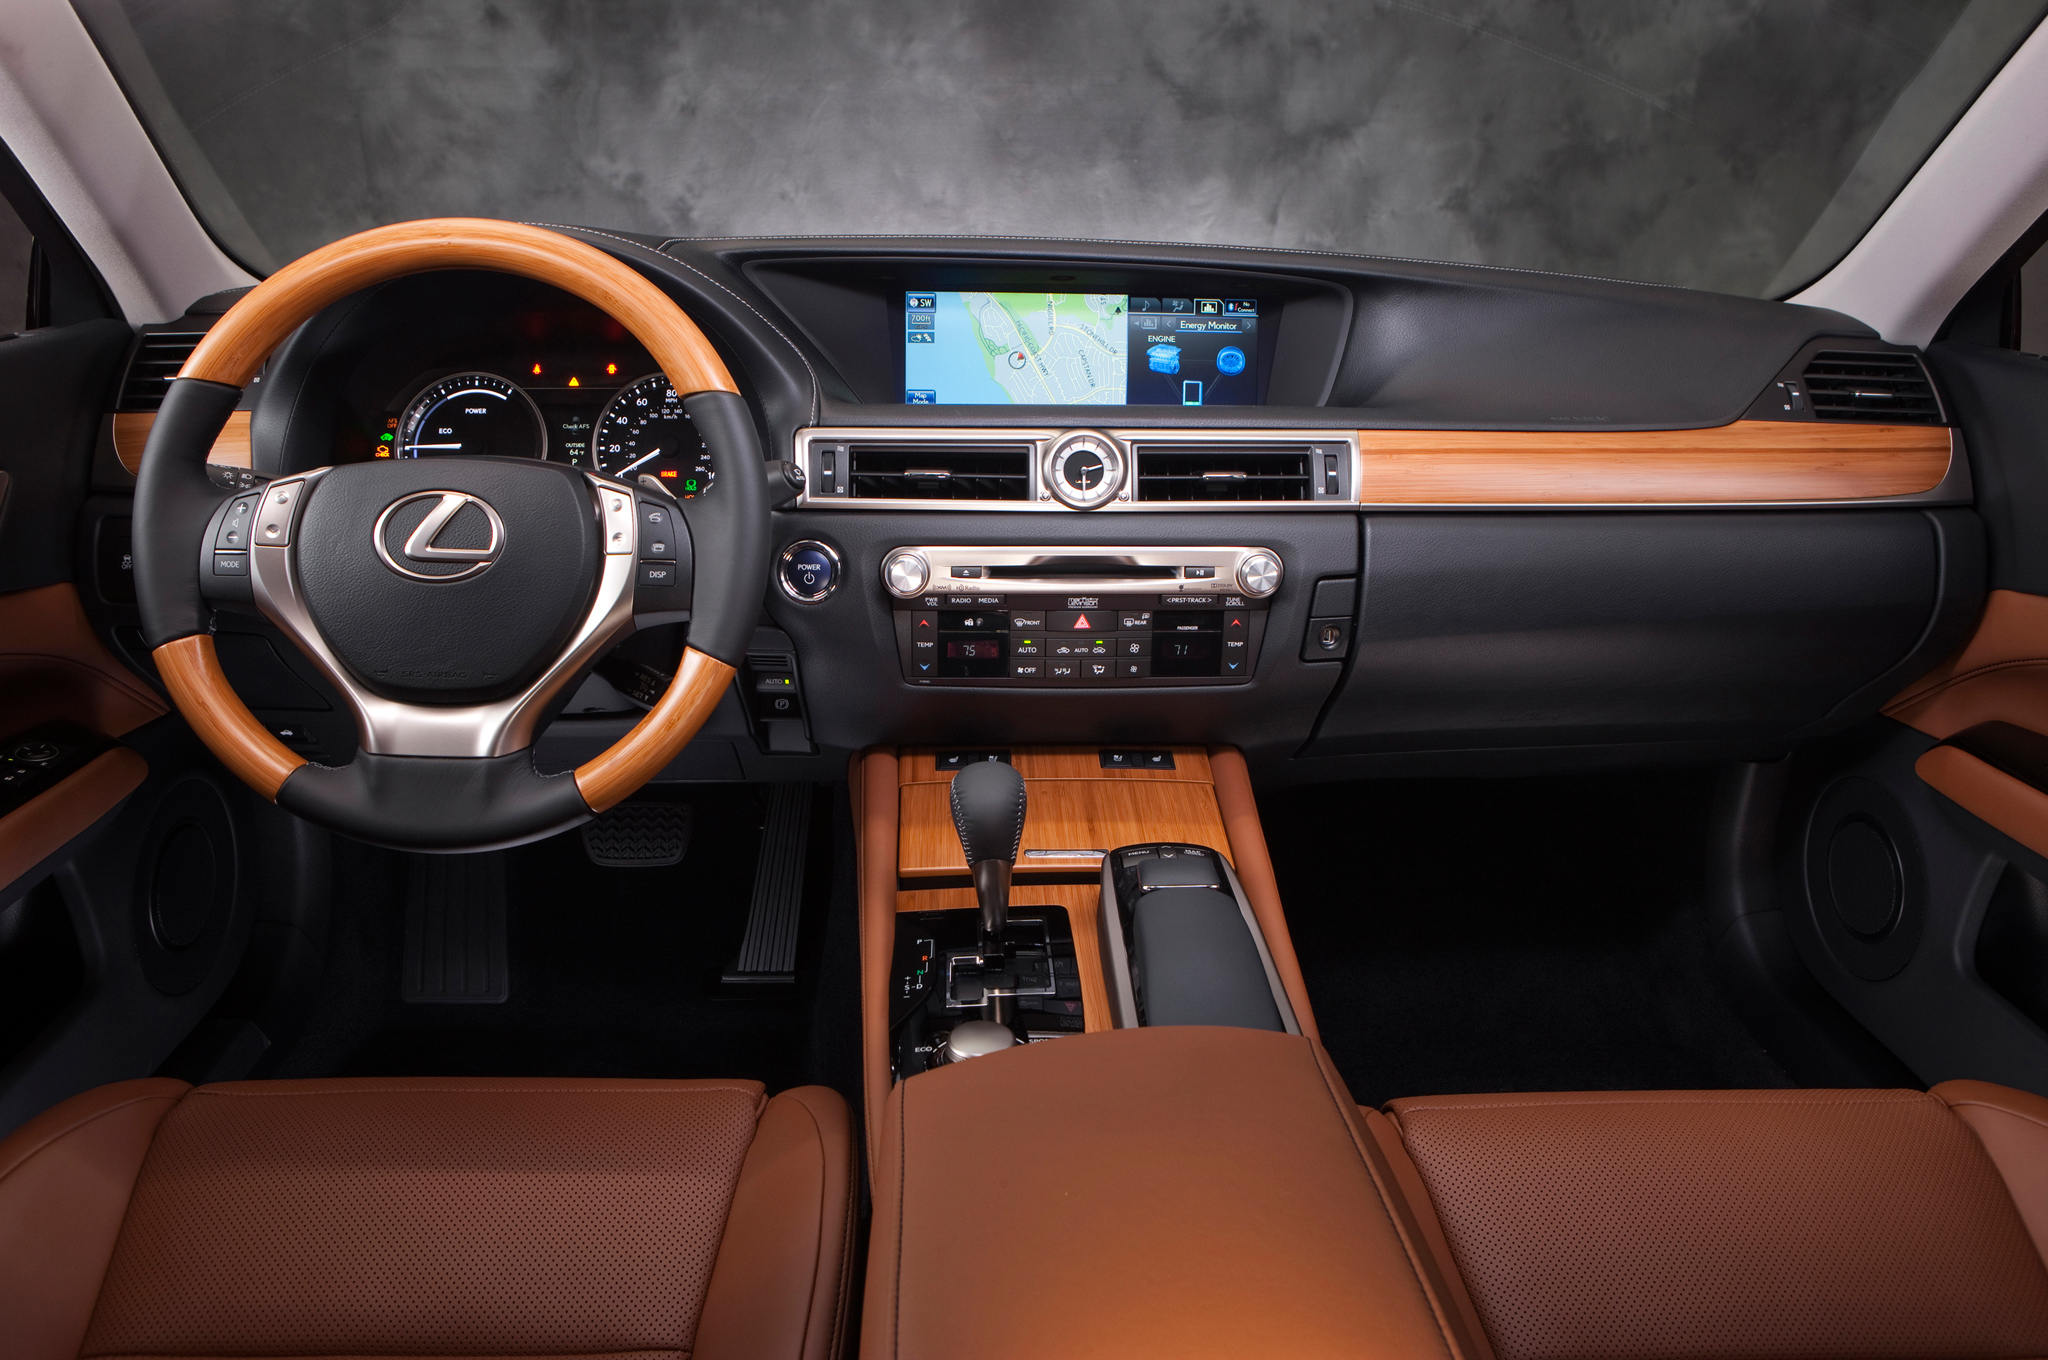 Sell your car in 30min lexus gs 2015 reviewed sell your car - Decoracion interior coche ...